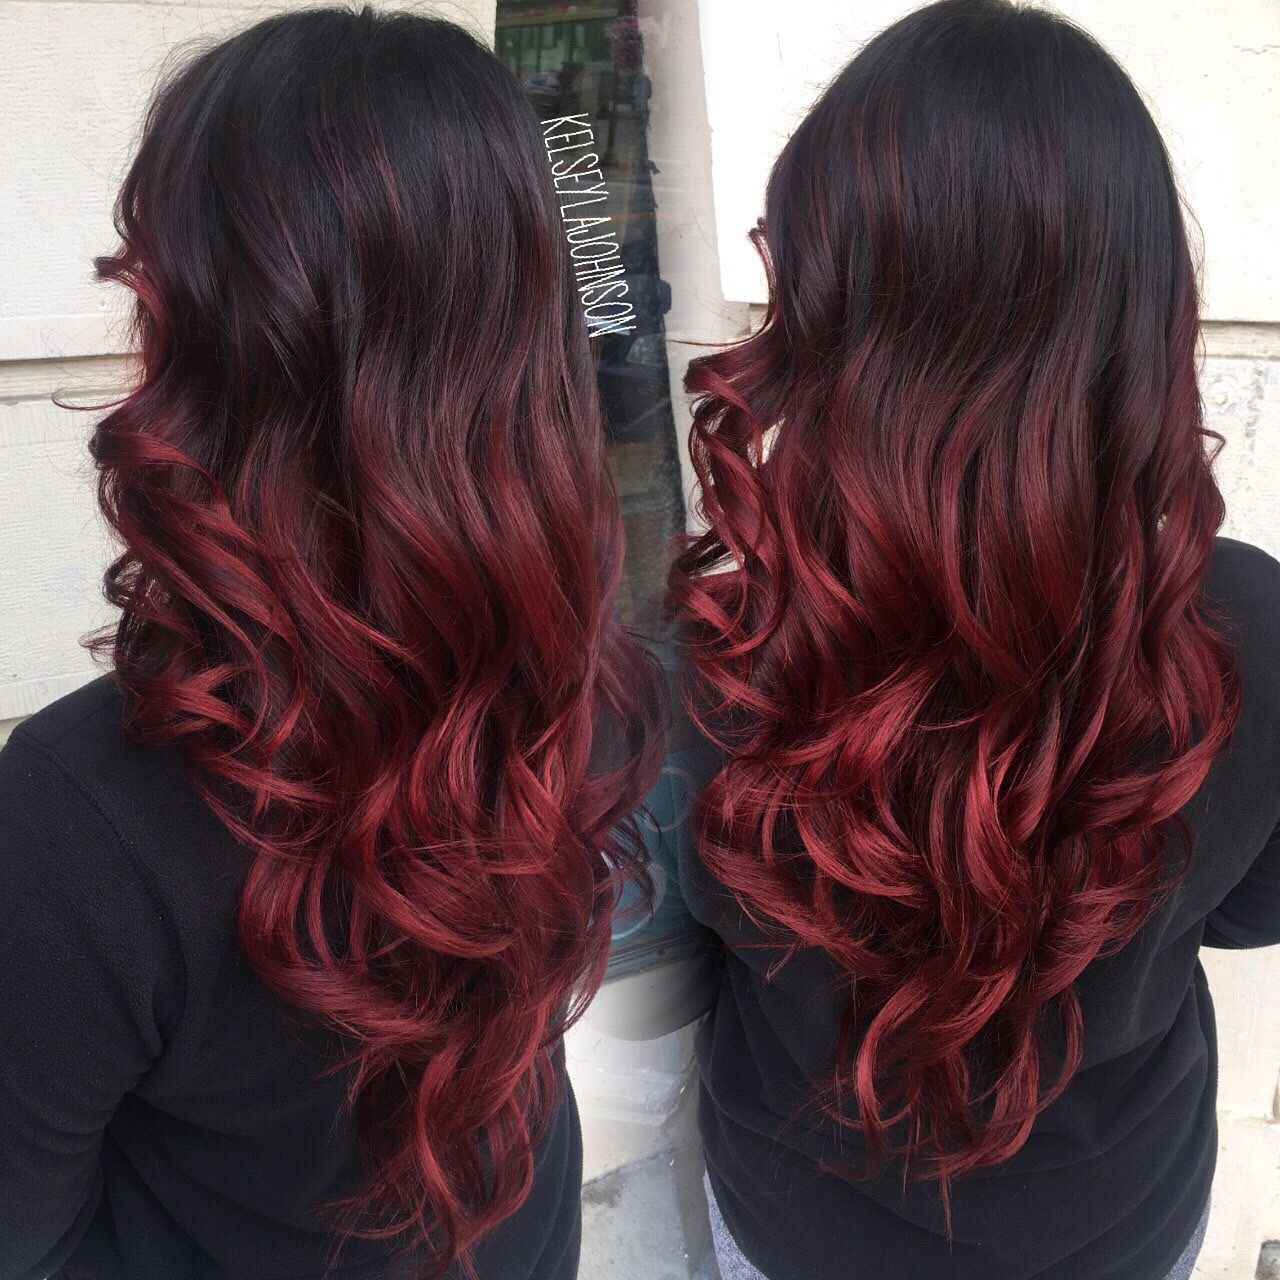 Dark Brown To Red Ombre Red Balayage Hair Hair Styles Red Ombre Hair